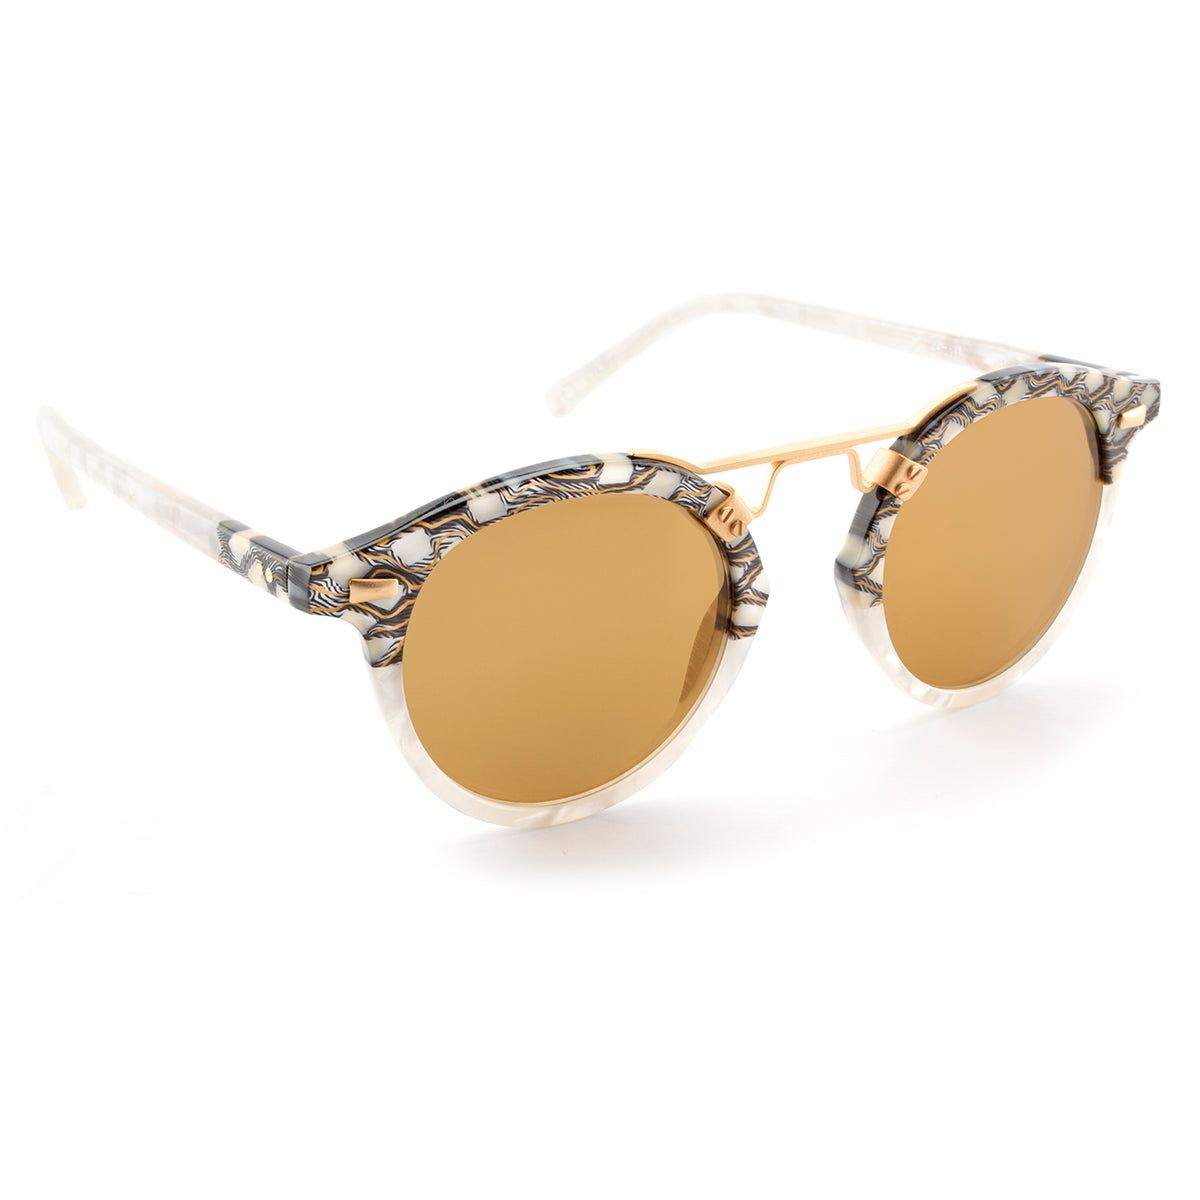 ST. LOUIS MIRRORED | Stella to Magnolia 24K handcrafted acetate Sunglasses